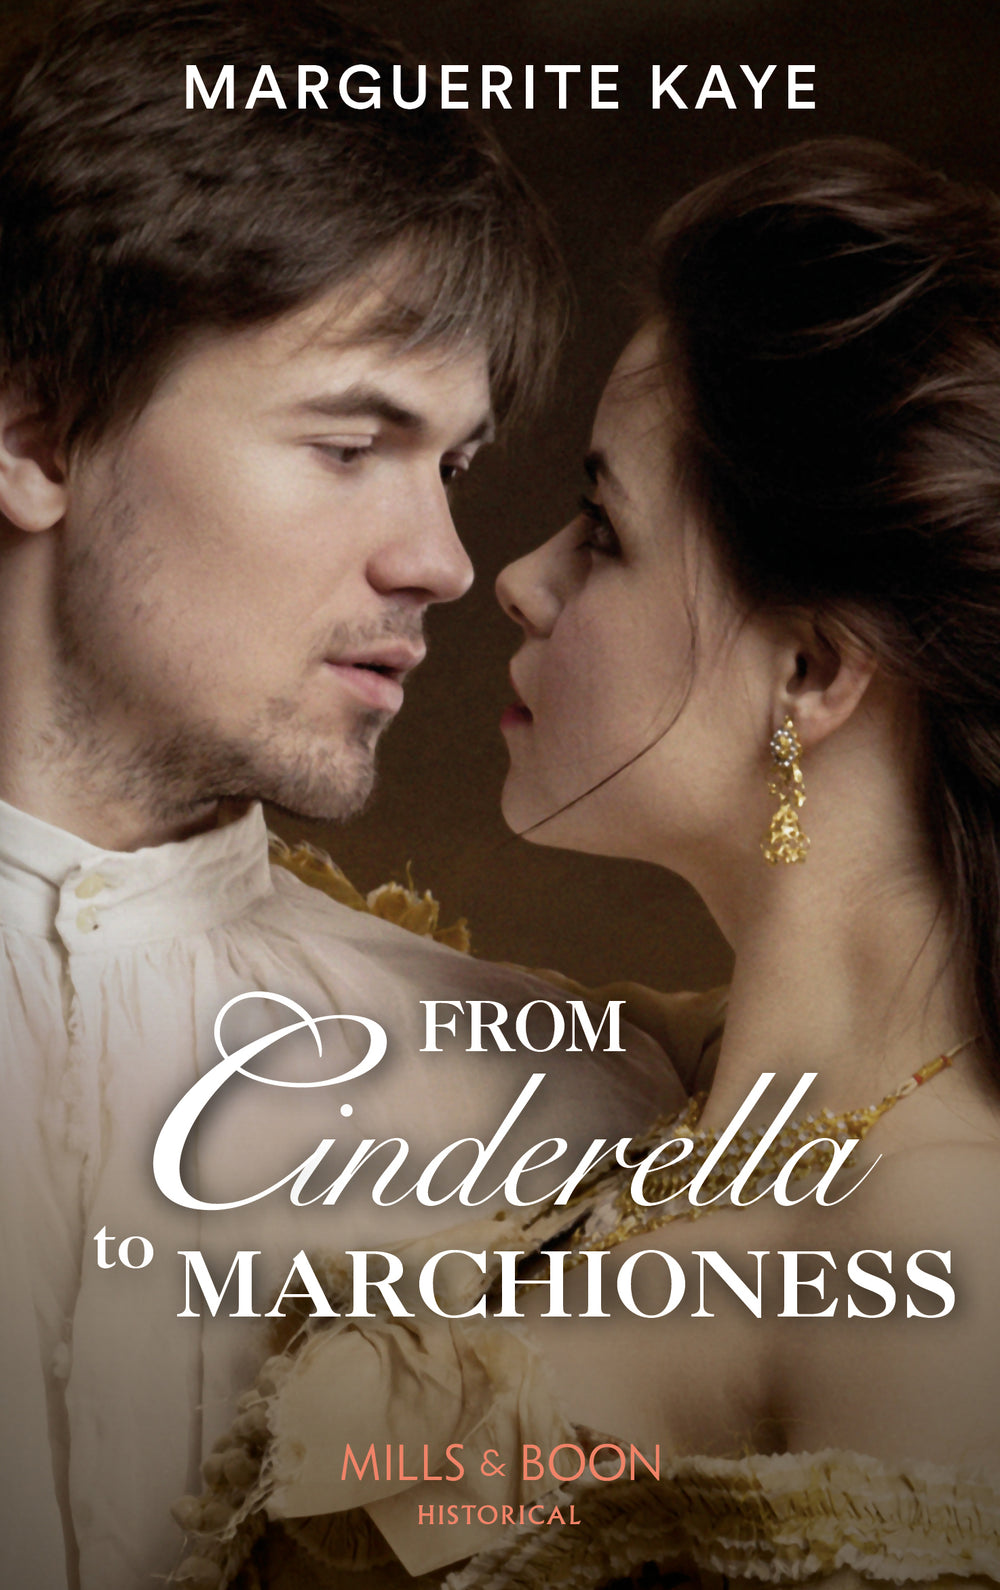 From Cinderella to Marchioness - Chapter 3